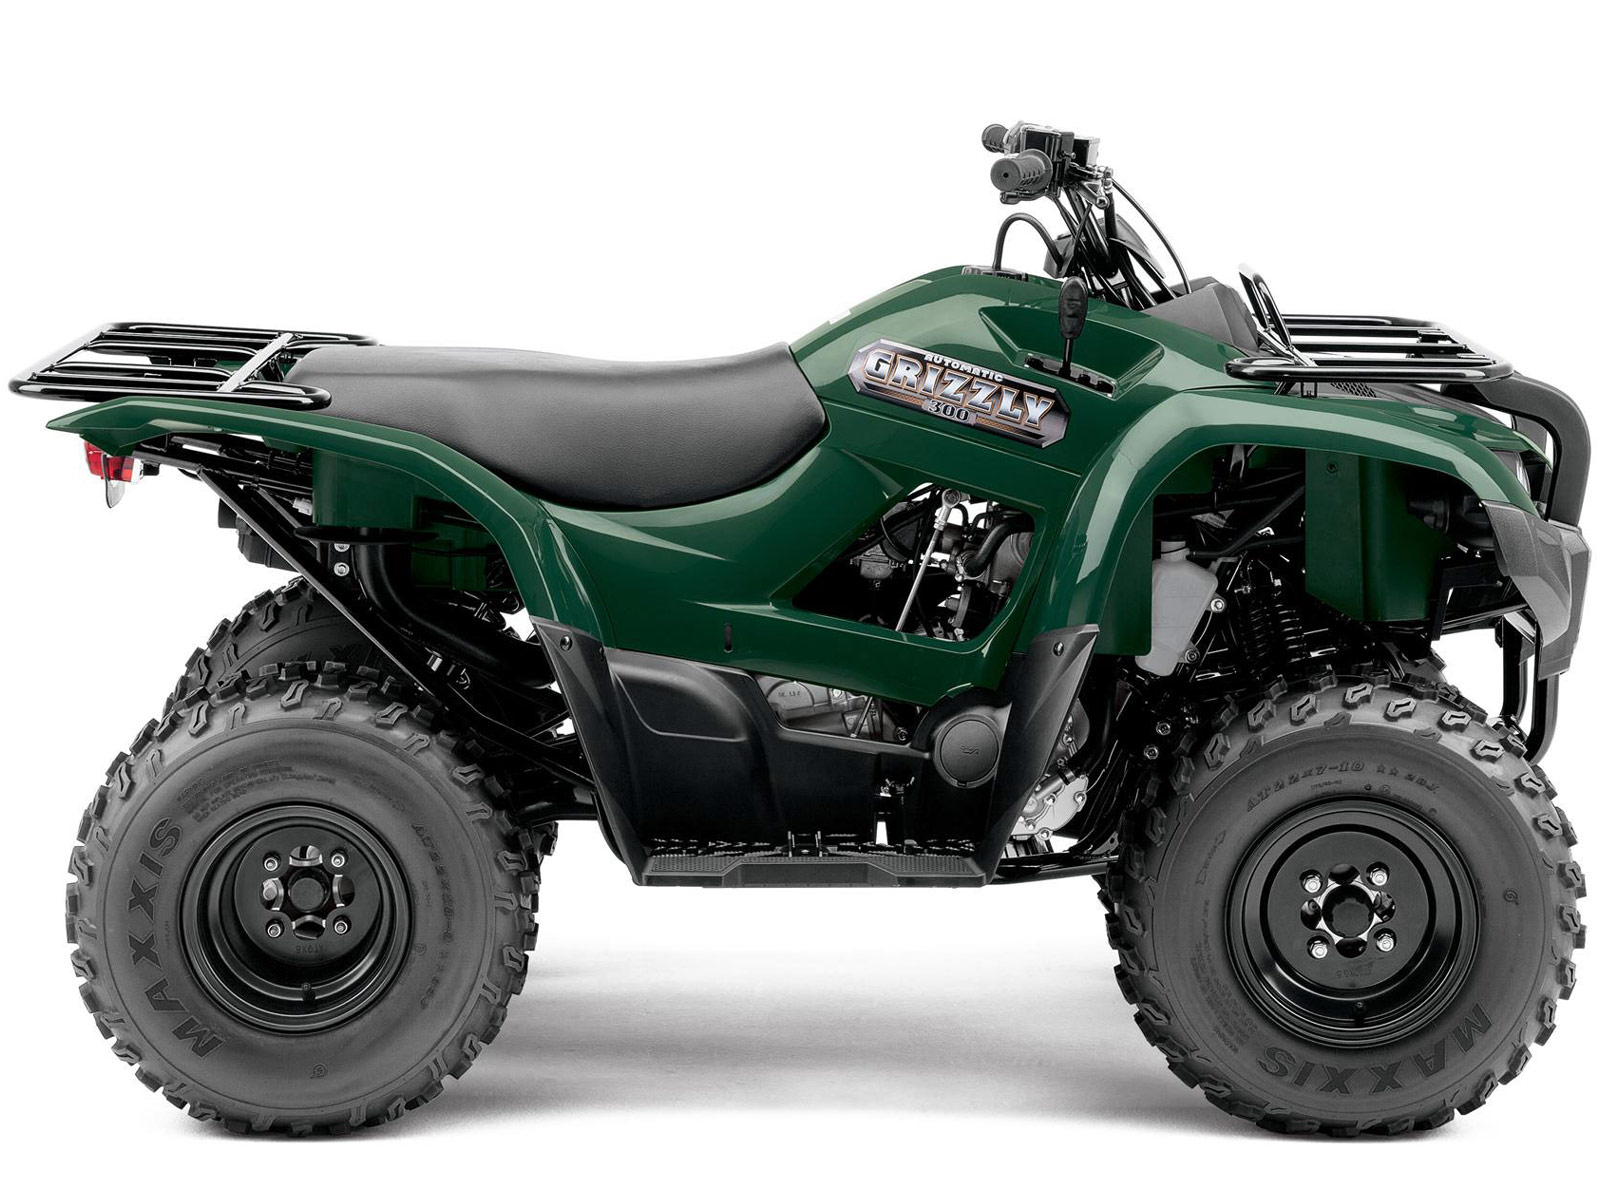 2013 yamaha grizzly 300 automatic atv pictures